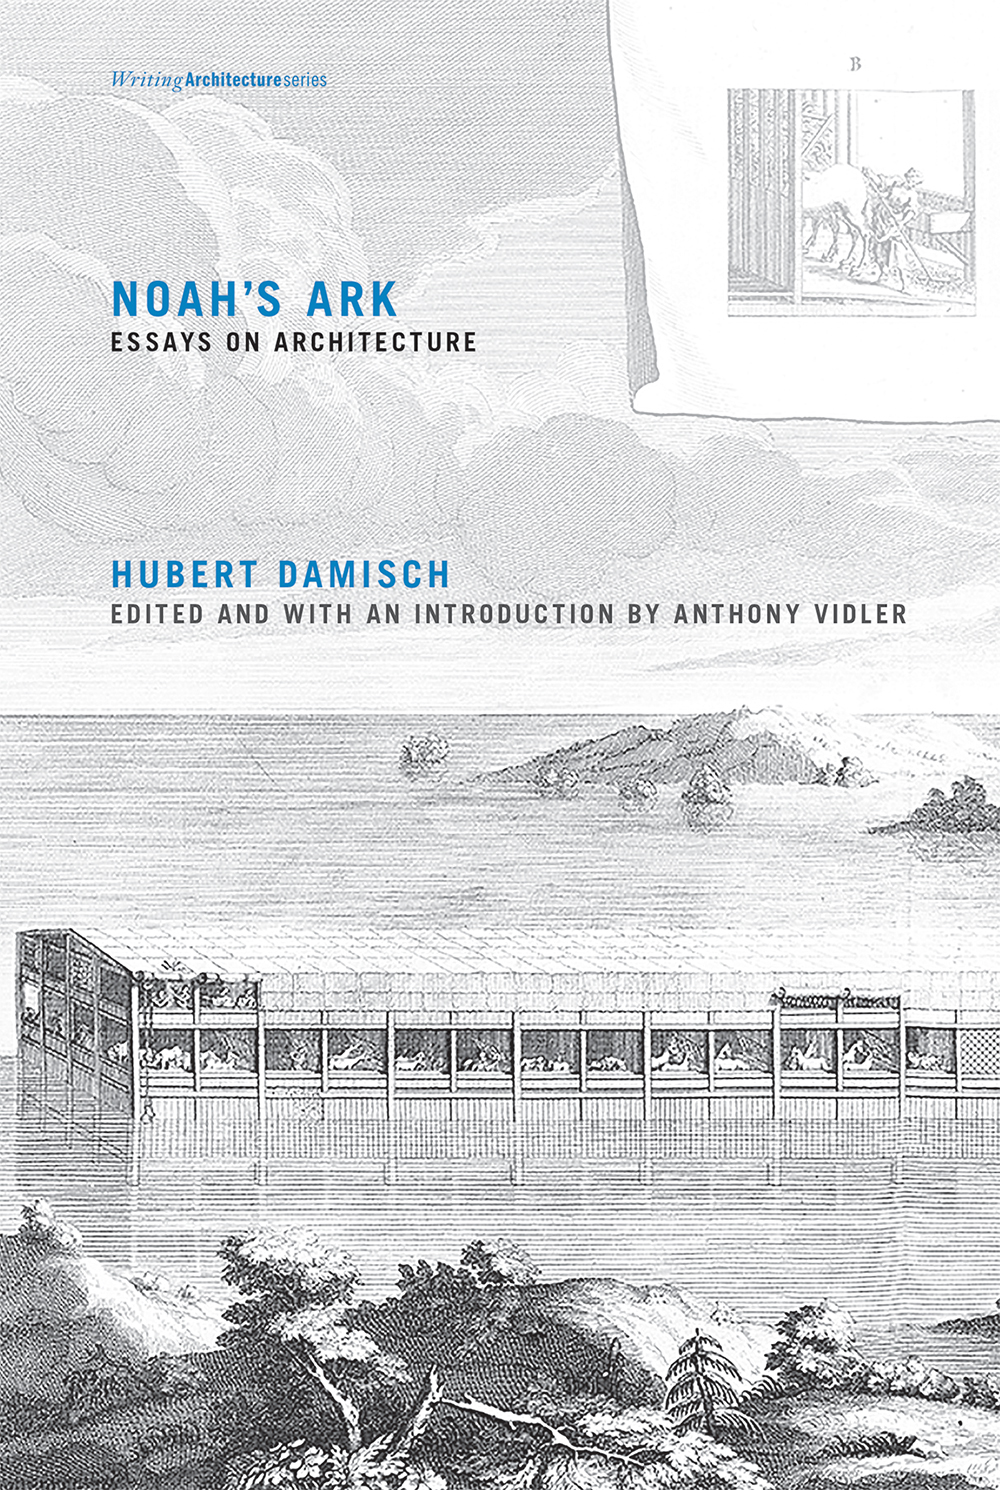 "Noah's Ark: Essays on Architecture   by Hubert Damisch   Edited and with an introduction by Anthony Vidler   Trained as an art historian but viewing architecture from the perspective of a ""displaced philosopher,"" Hubert Damisch offers a meticulous parsing of language and structure to ""think architecture in a different key,"" as Anthony Vidler writes in the introduction. Drawn to architecture because it provides ""an open series of structural models,"" Damisch examines the origin of architecture and then its structural development from the 19th through the 21st centuries. He leads the reader from Jean-François Blondel to Eugène Viollet-le-Duc to Mies van der Rohe to Diller + Scofidio, with stops along the way at the Temple of Jerusalem, Vitruvius's  De Architectura , and the Louvre, thus tracing a unique trajectory of architectural structure and thought."